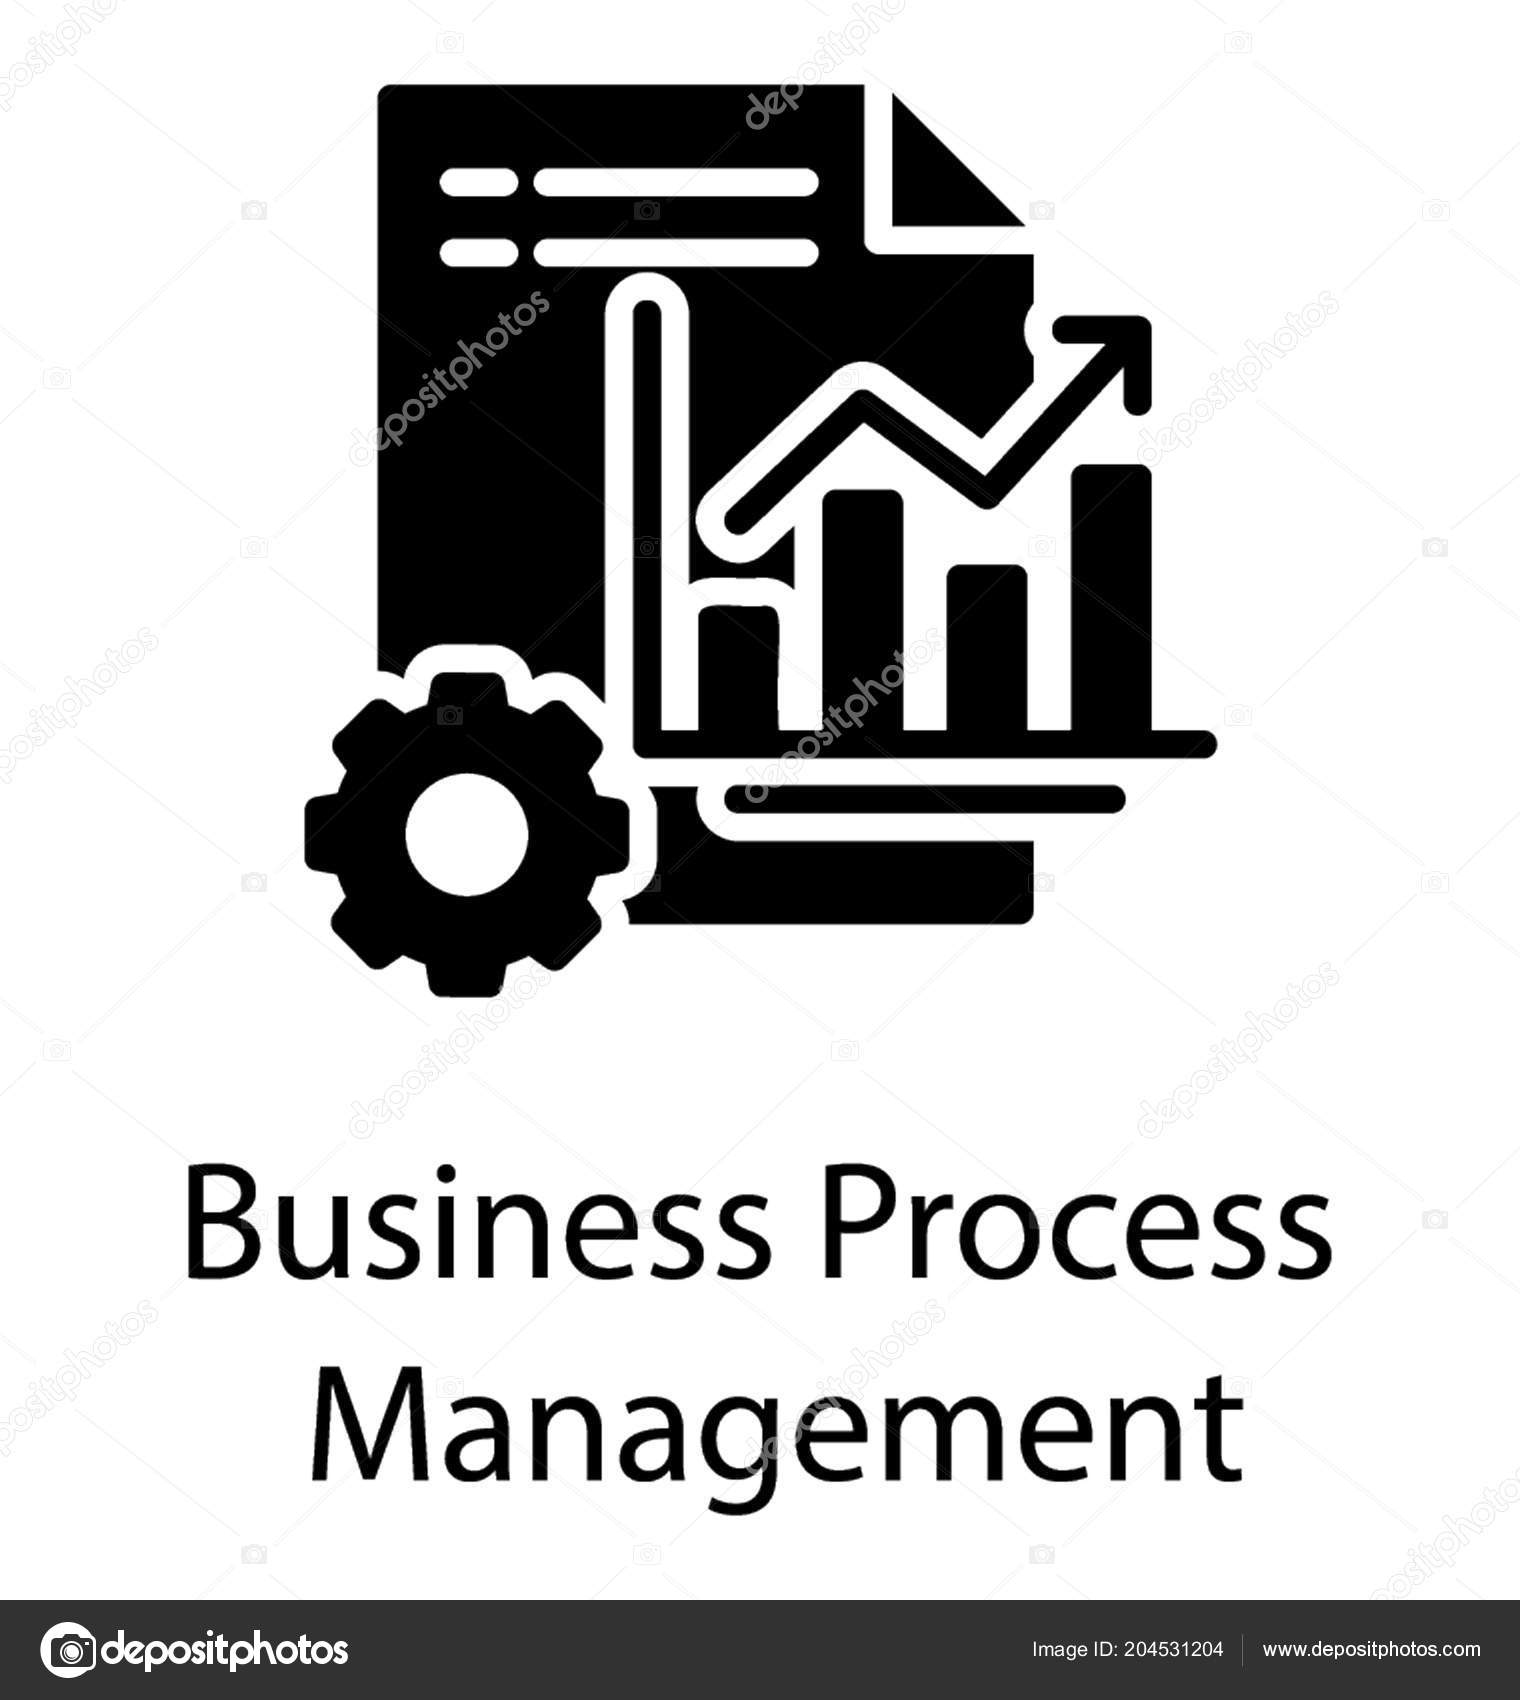 Business Process Management Icon Denoted Using Bar Graph